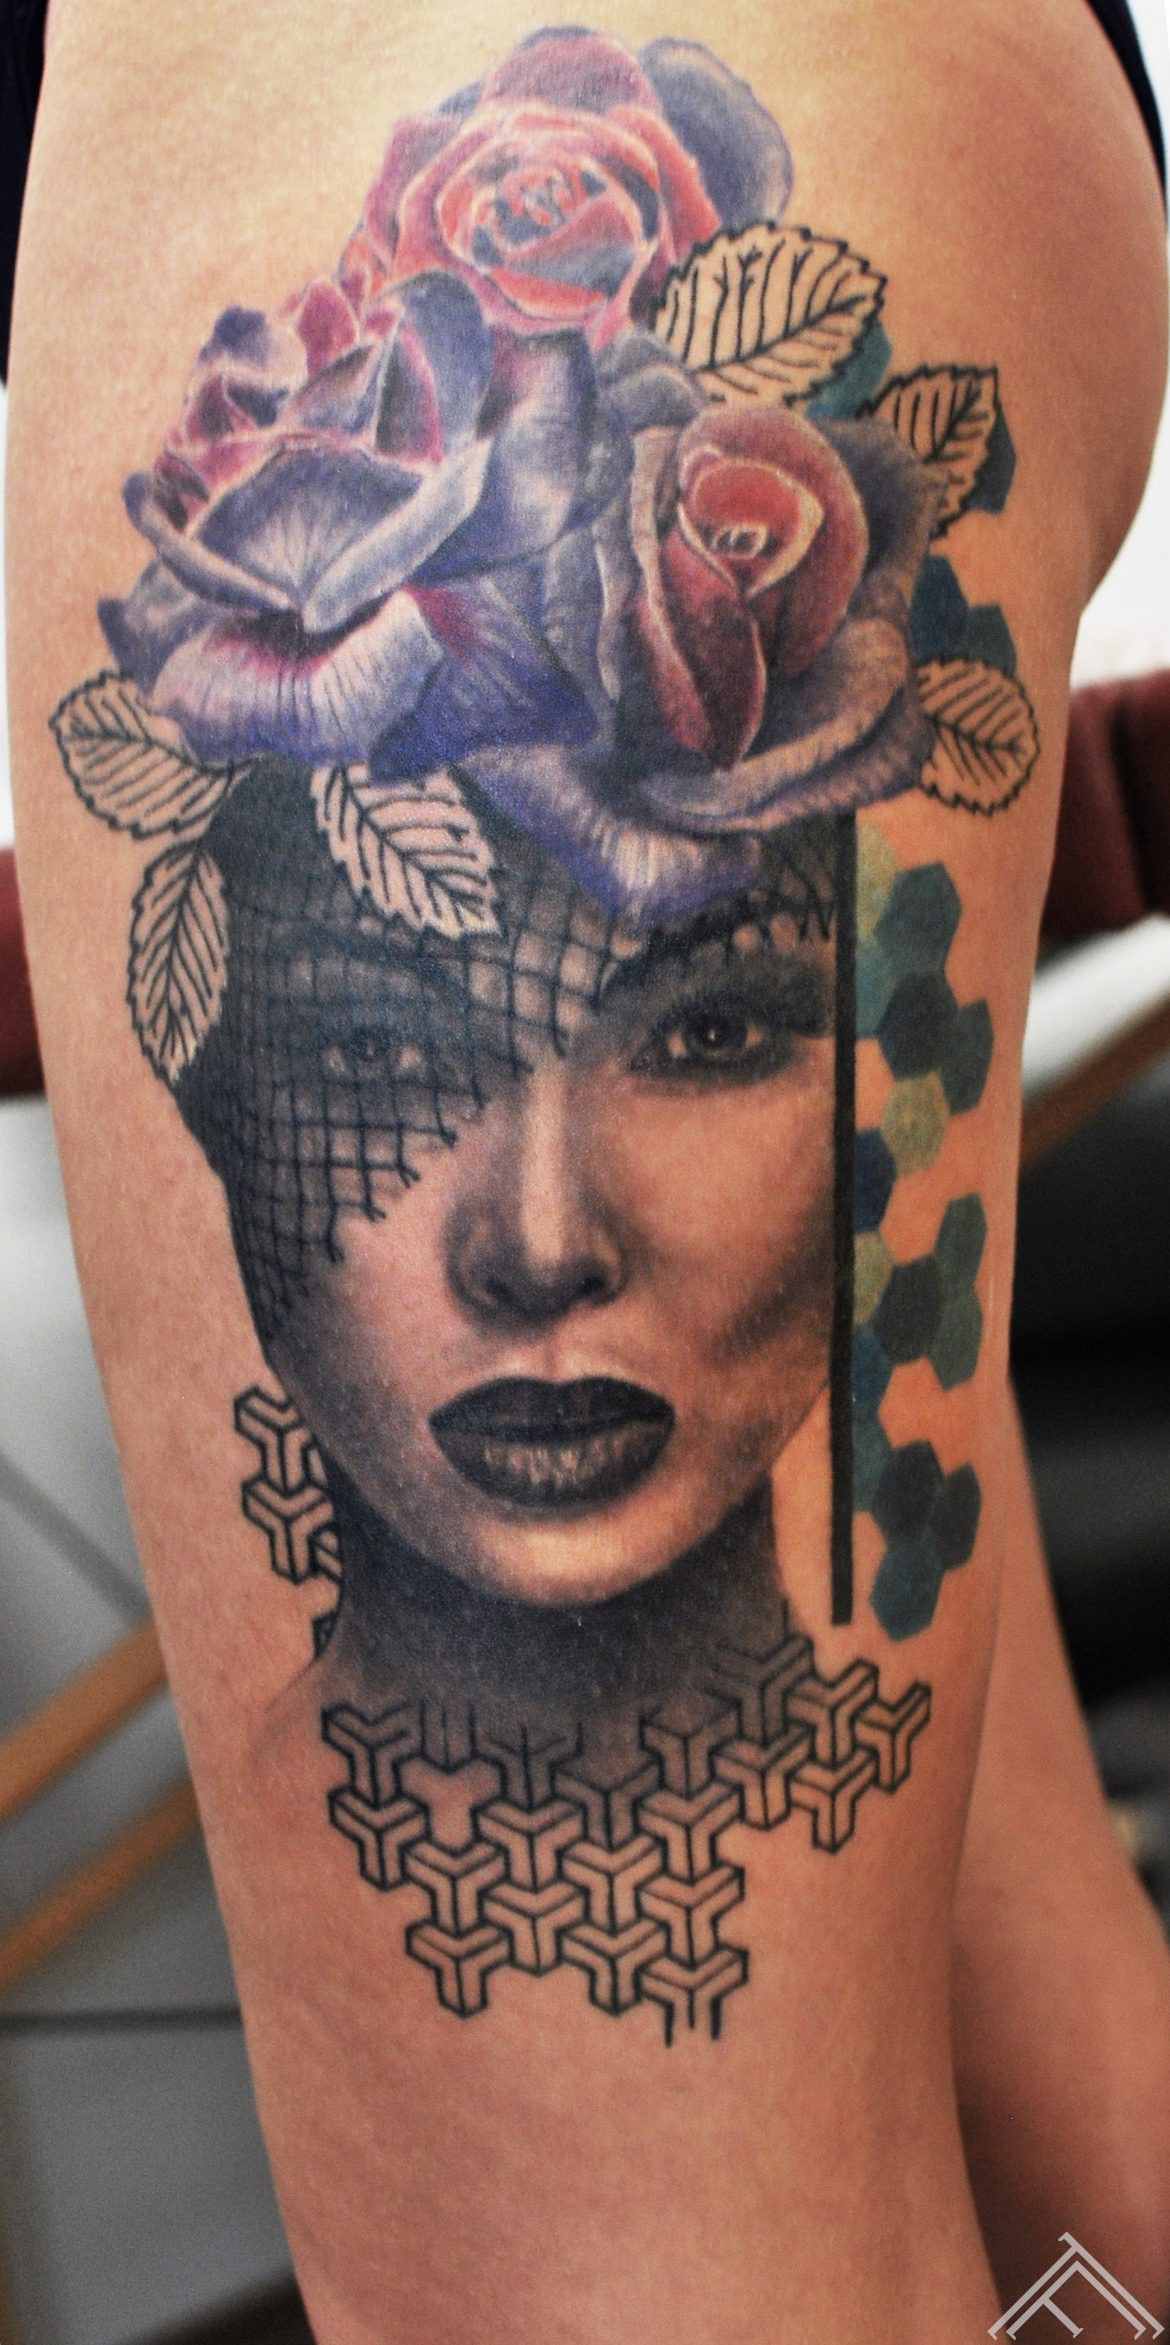 woman_portrait_tattoo_roses_lace_fantasy_tattoofrequency_art_janisanderson_riga_normalsize